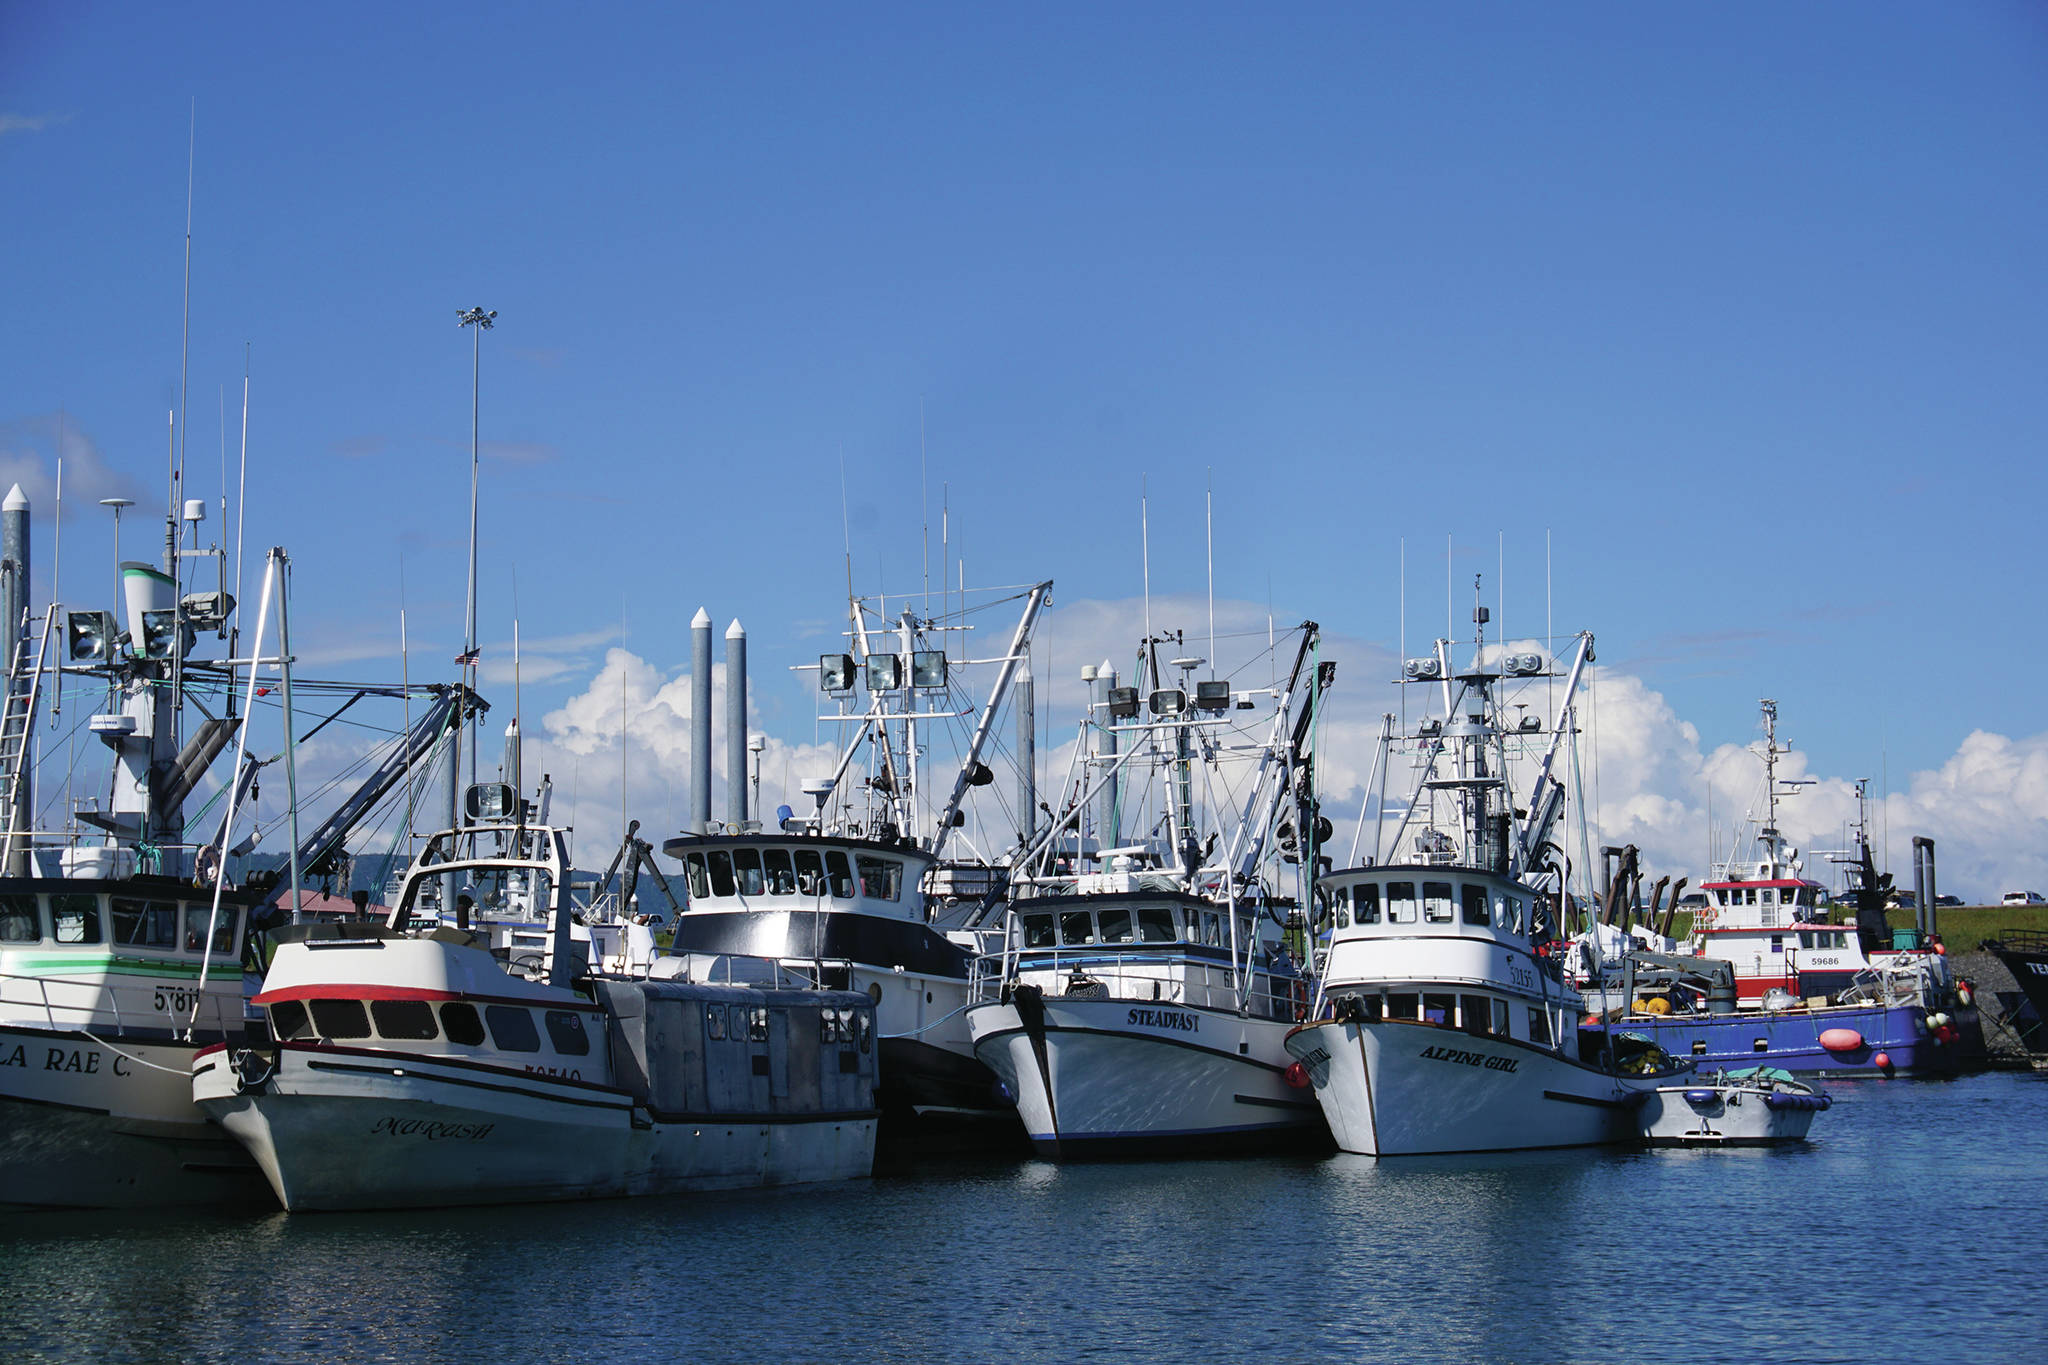 Commercial fishing boats are rafted together in May 2016 in the harbor in Homer, Alaska. (Photo by Michael Armstrong/Homer News)